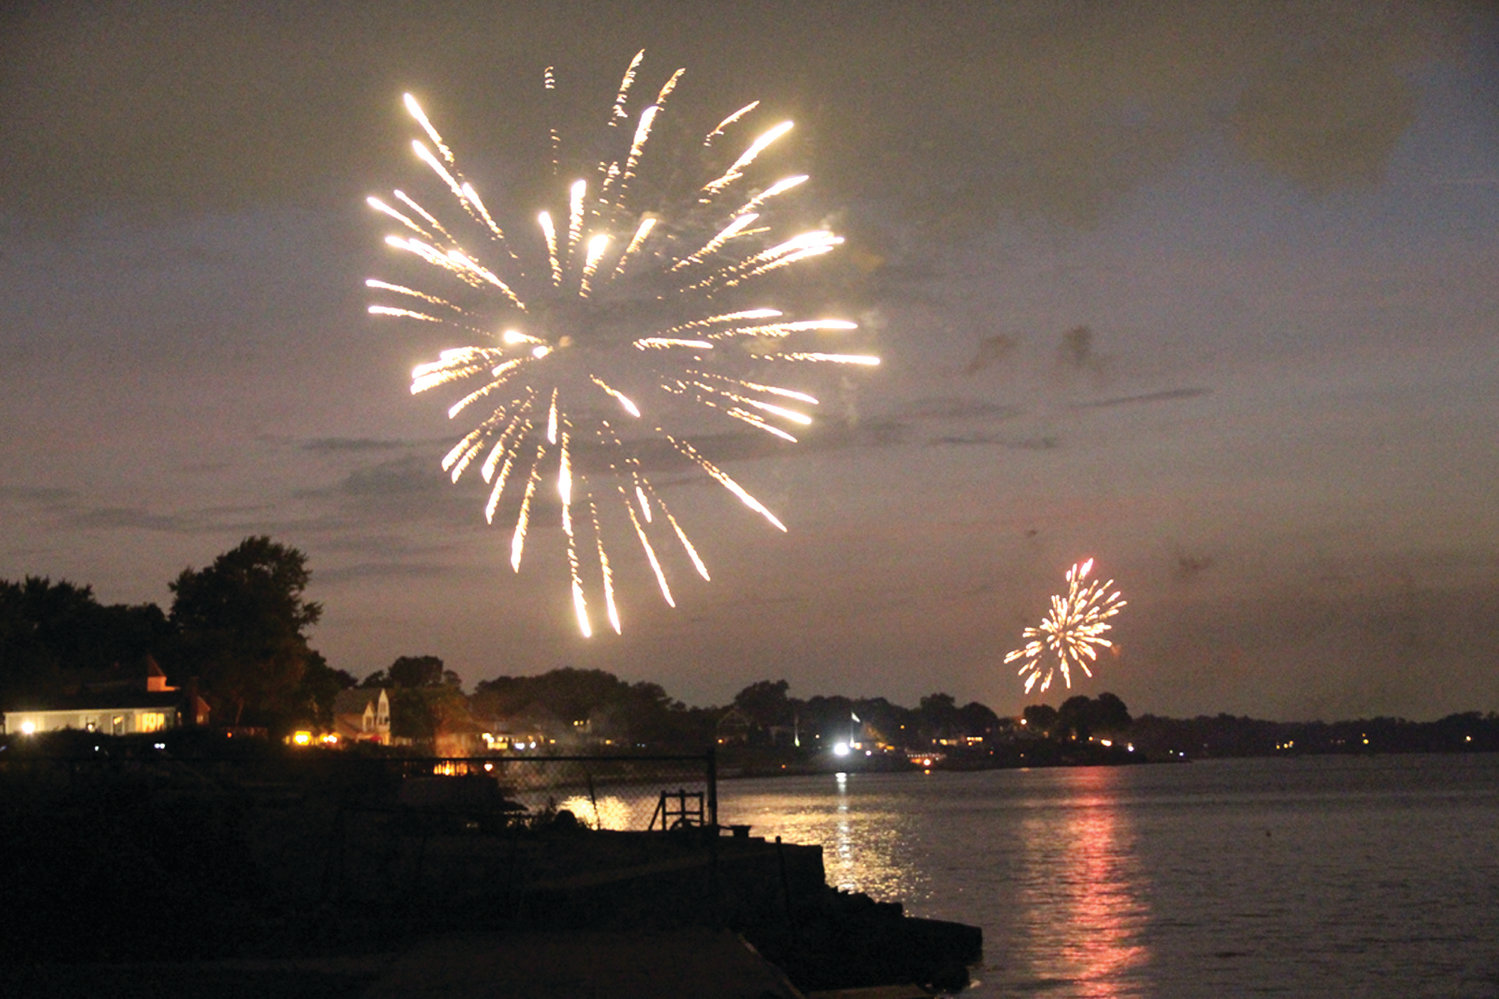 E VERYBODY CELEBRATES: Neighborhood fireworks as seen in Conimicut last year.